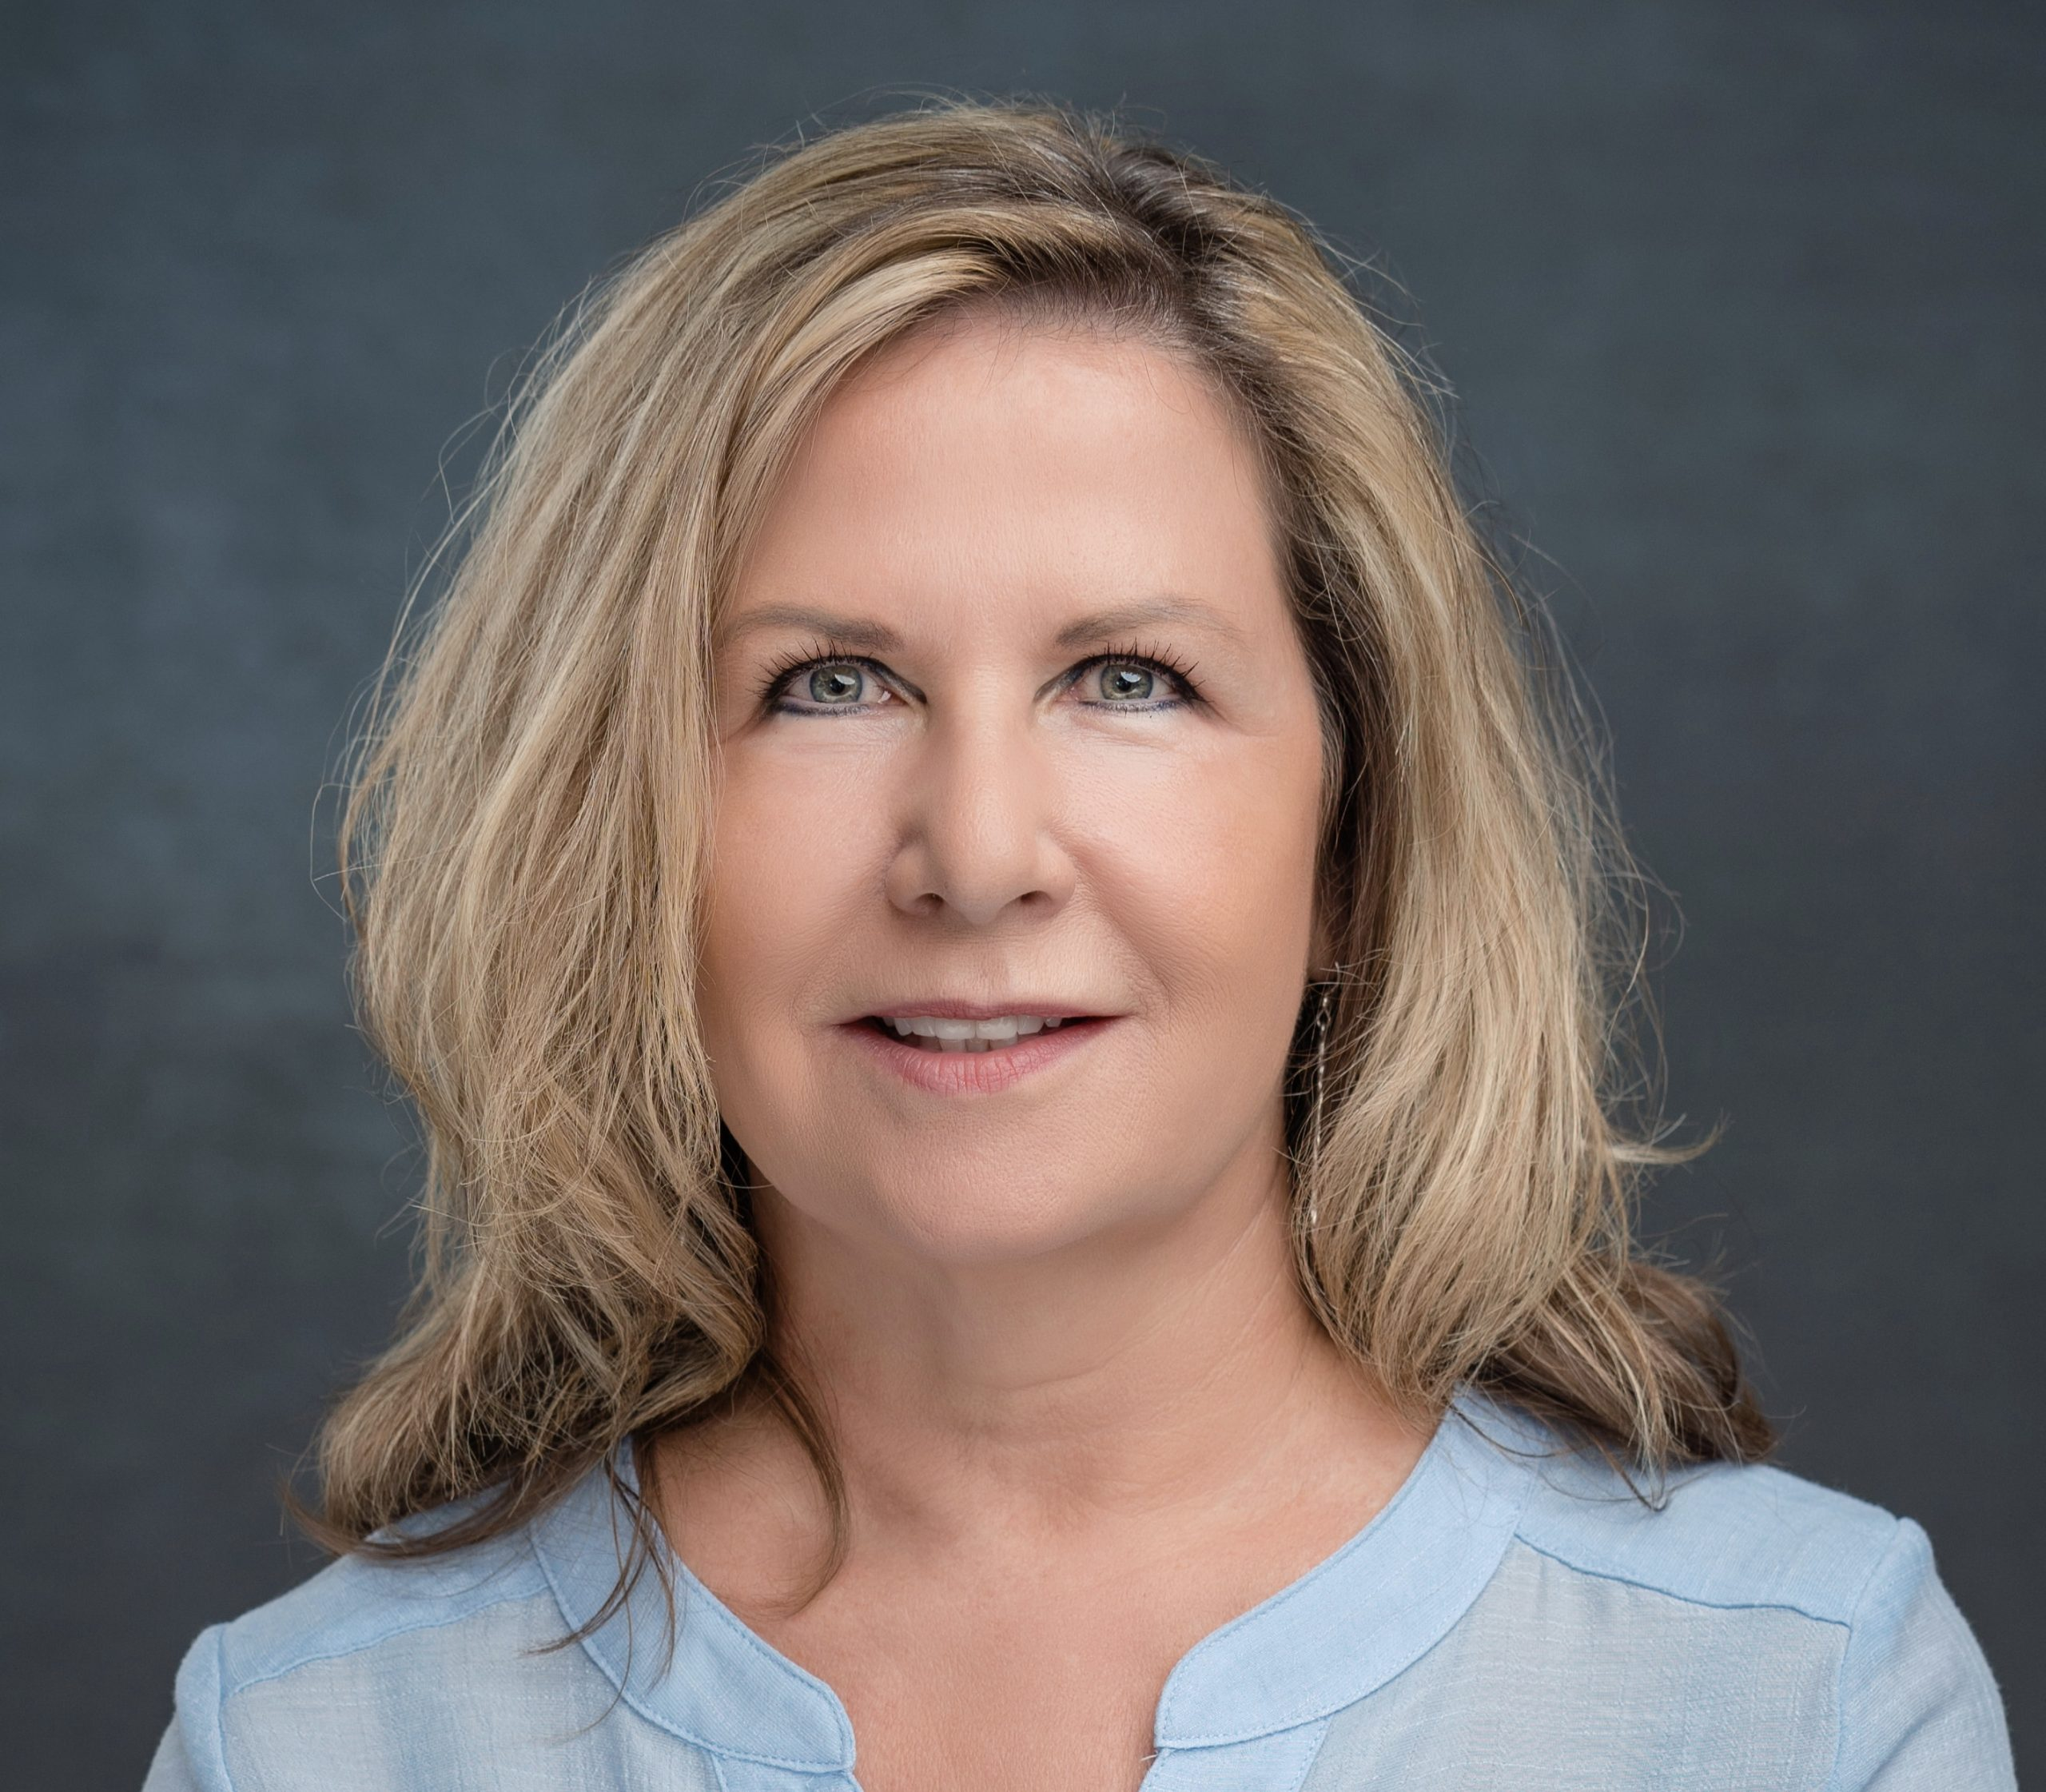 Lenore Knudtson of Pingora Consulting, LLC